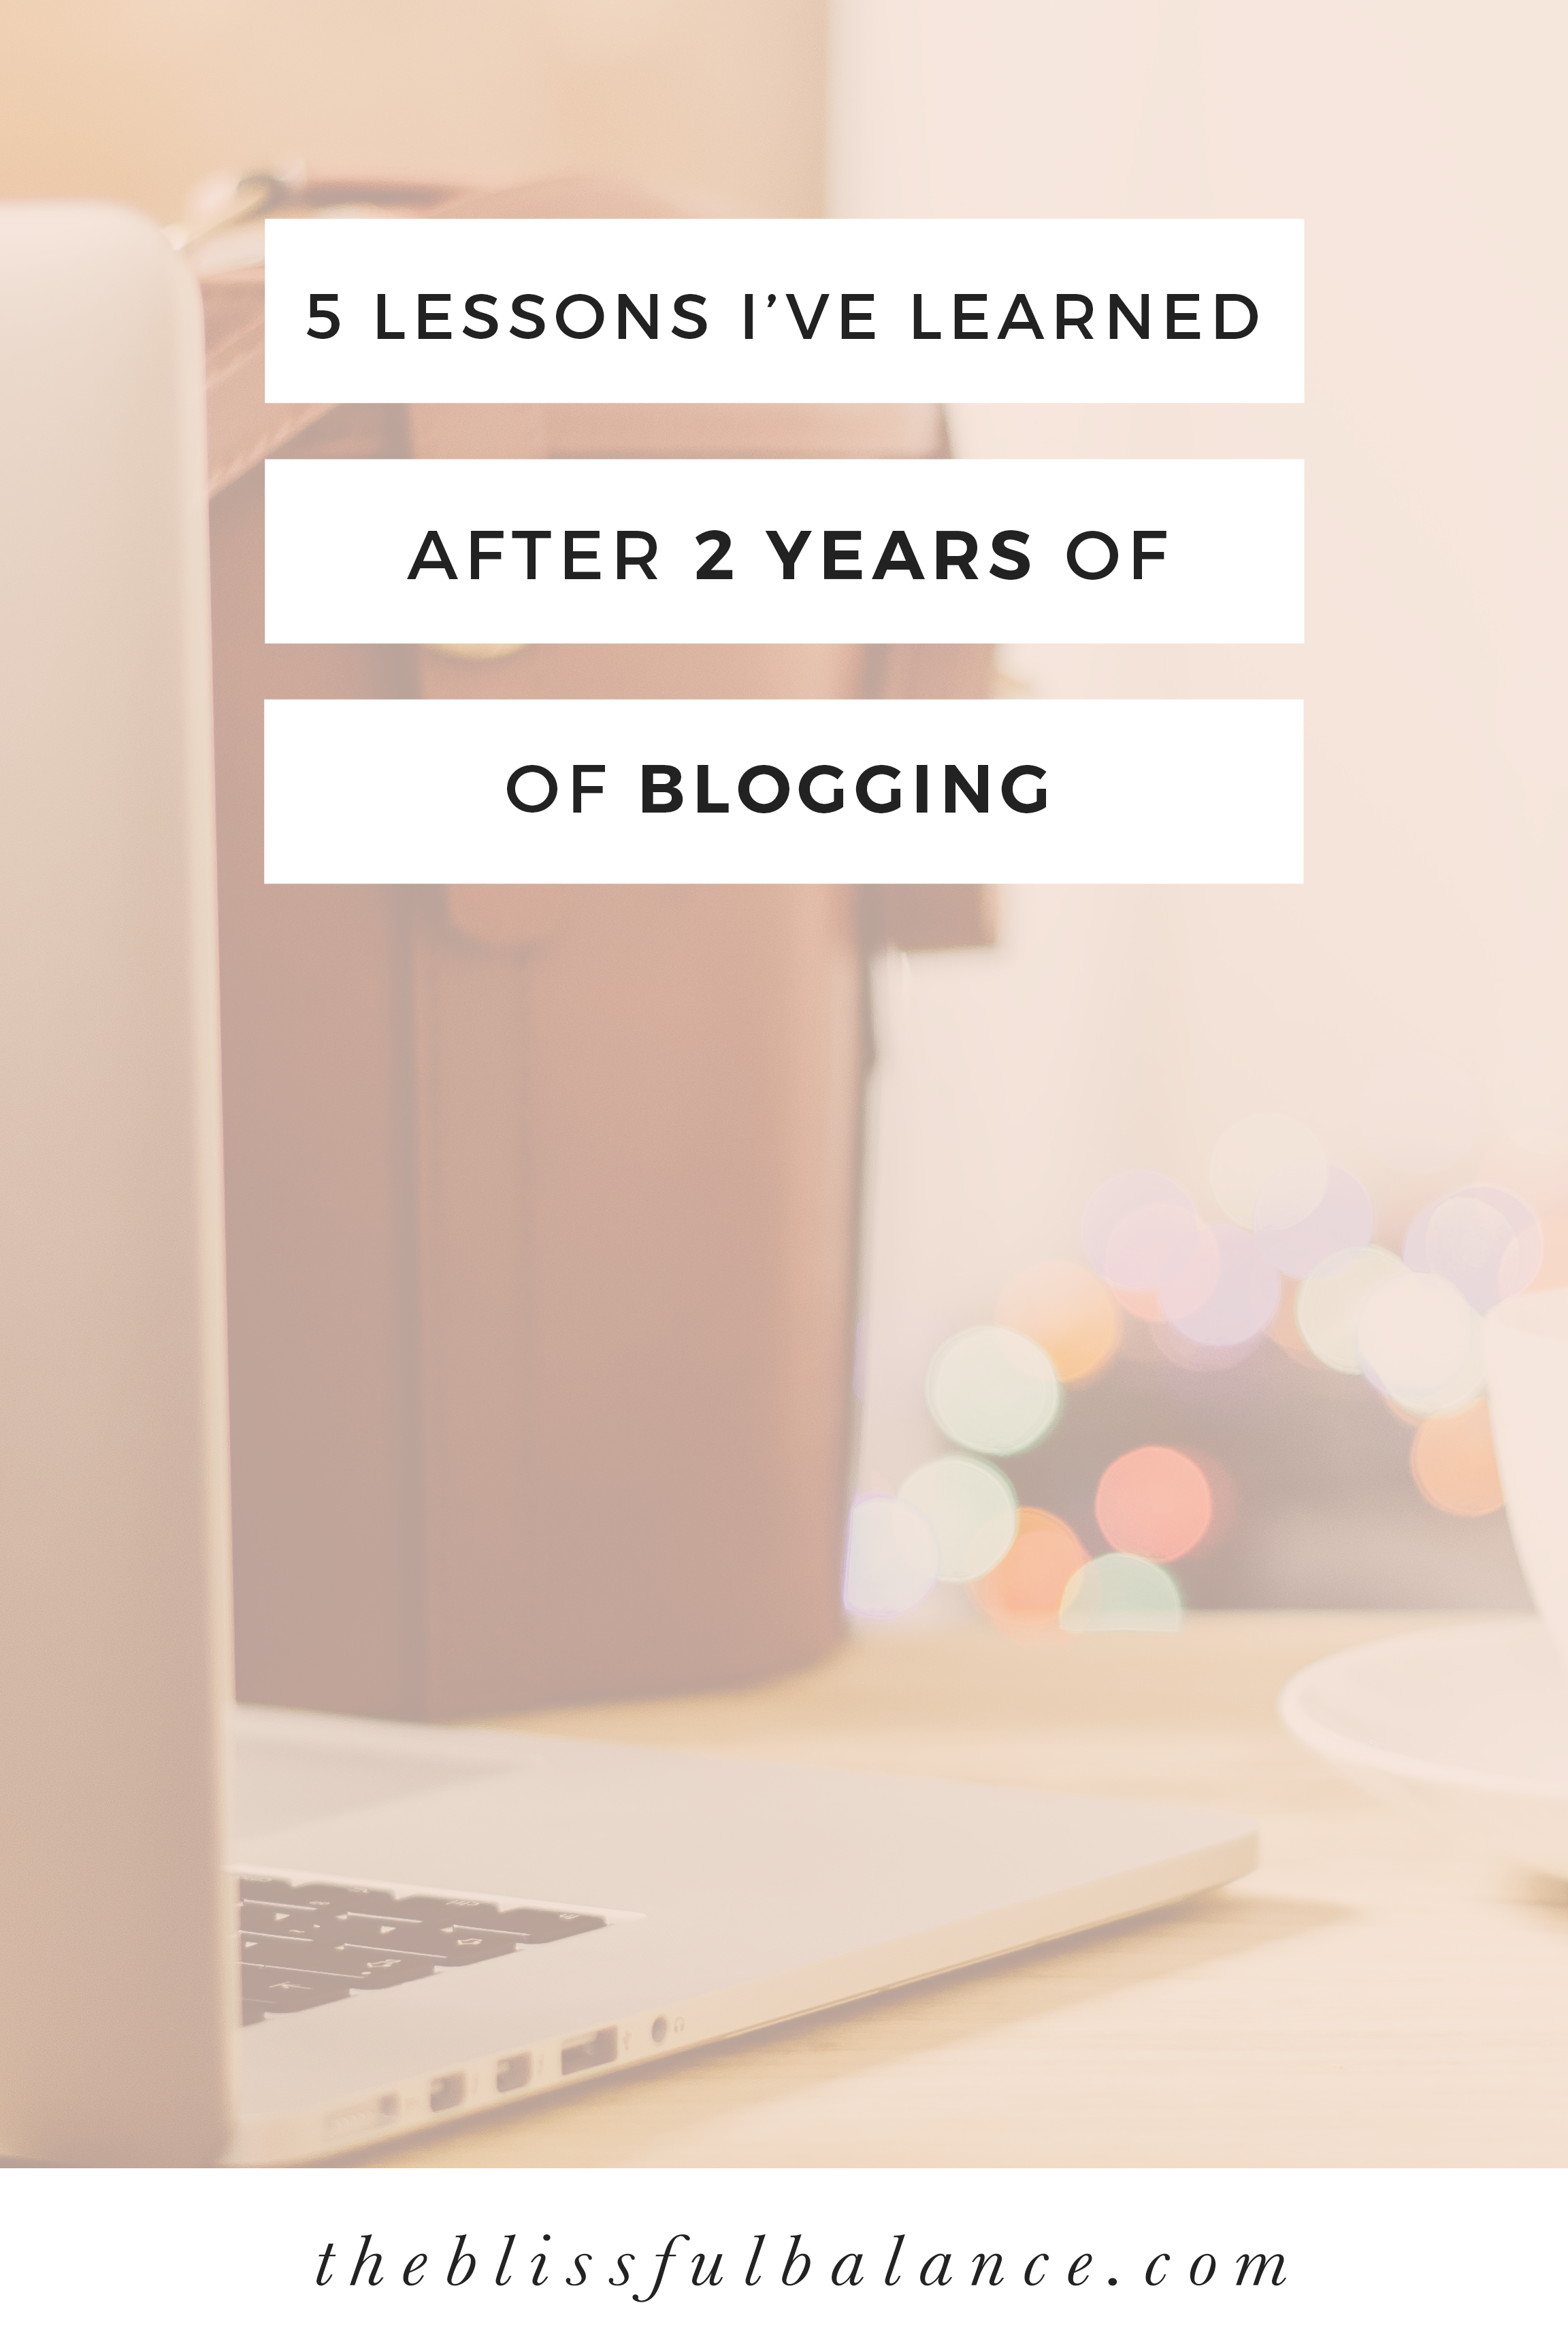 5 Lessons I've Learned After 2 Years of Blogging